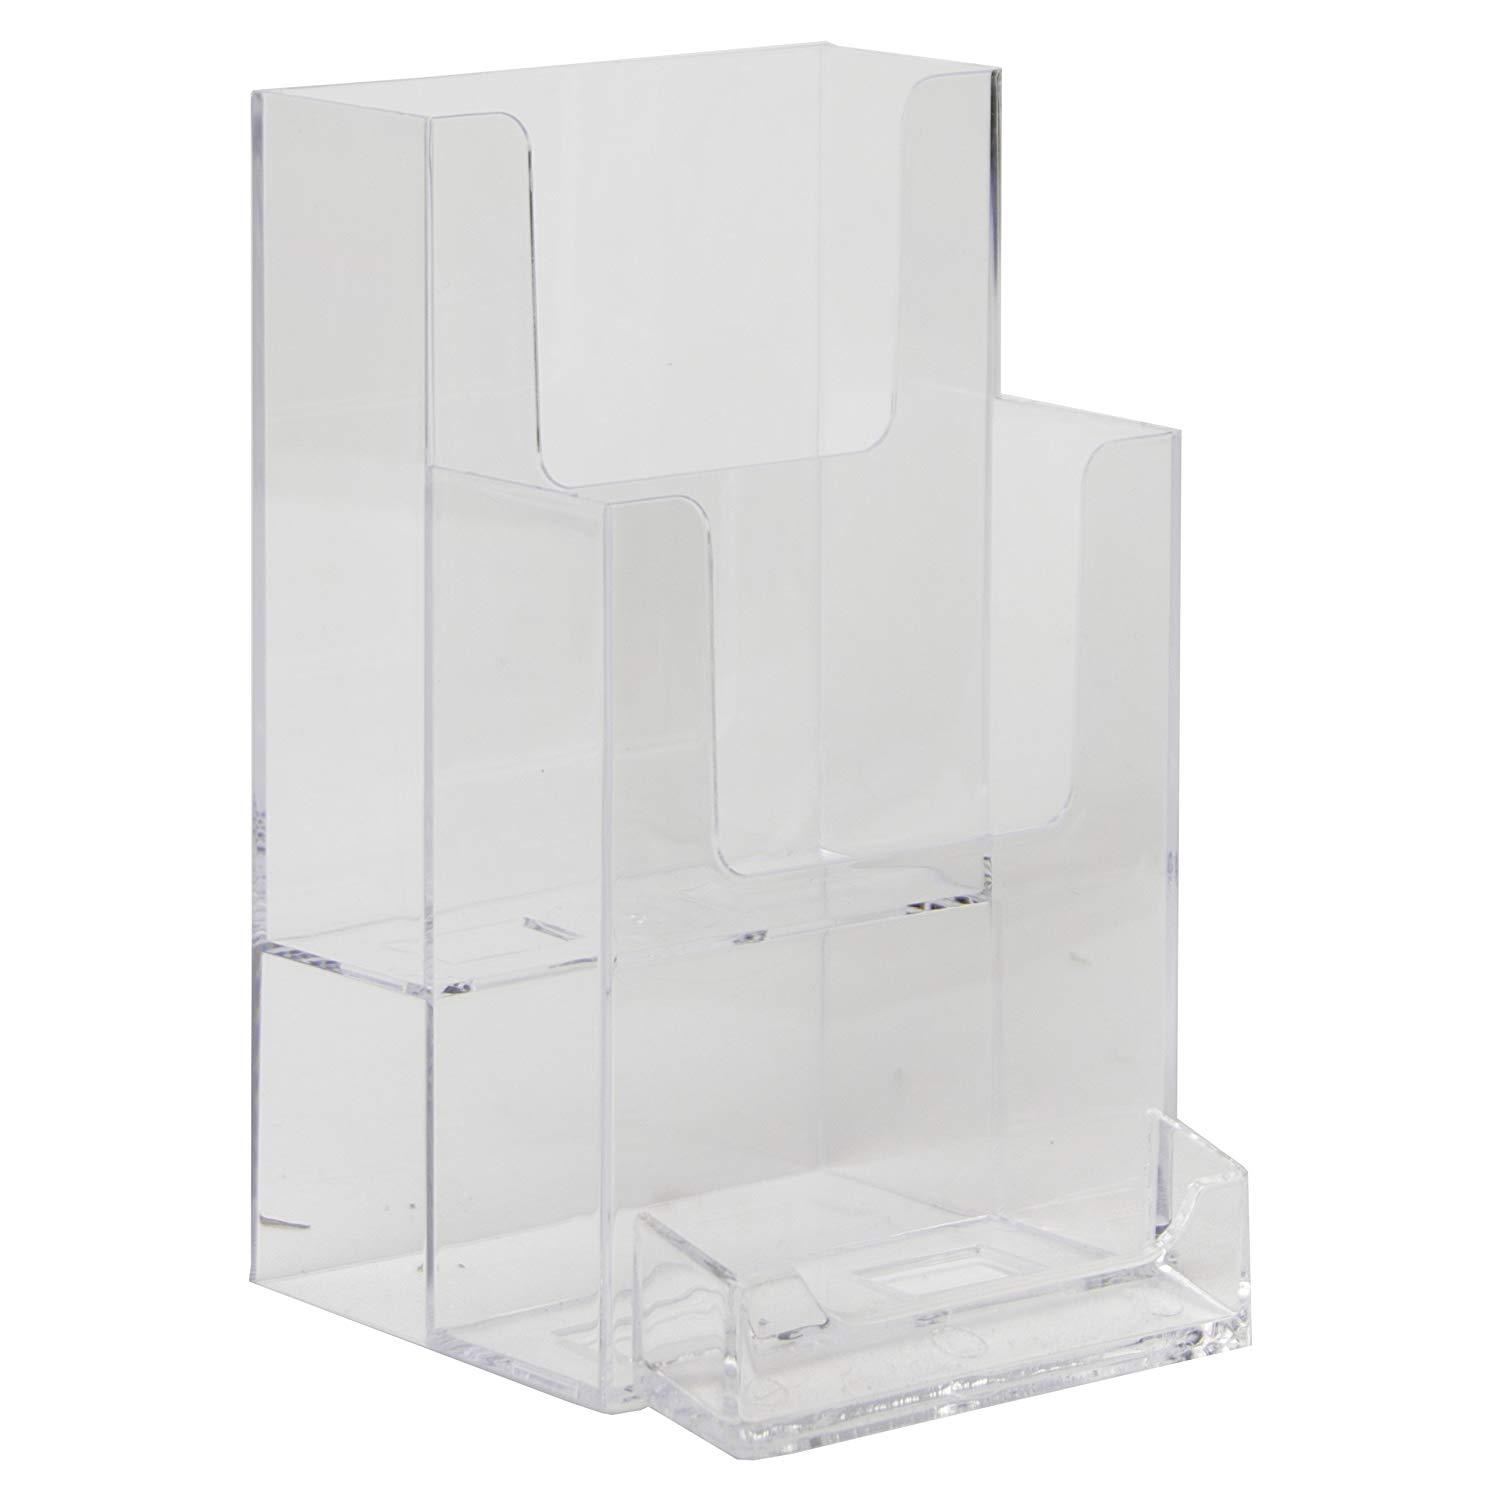 Clear-Ad - LHF-P102 - Acrylic 2 Tier Trifold Brochure Display w/Business Card Pocket - Plastic Literature Holder for Flyers, Booklets, Bills, Mail, Letters, Cards, Pamphlets, Maps (Pack of 2)